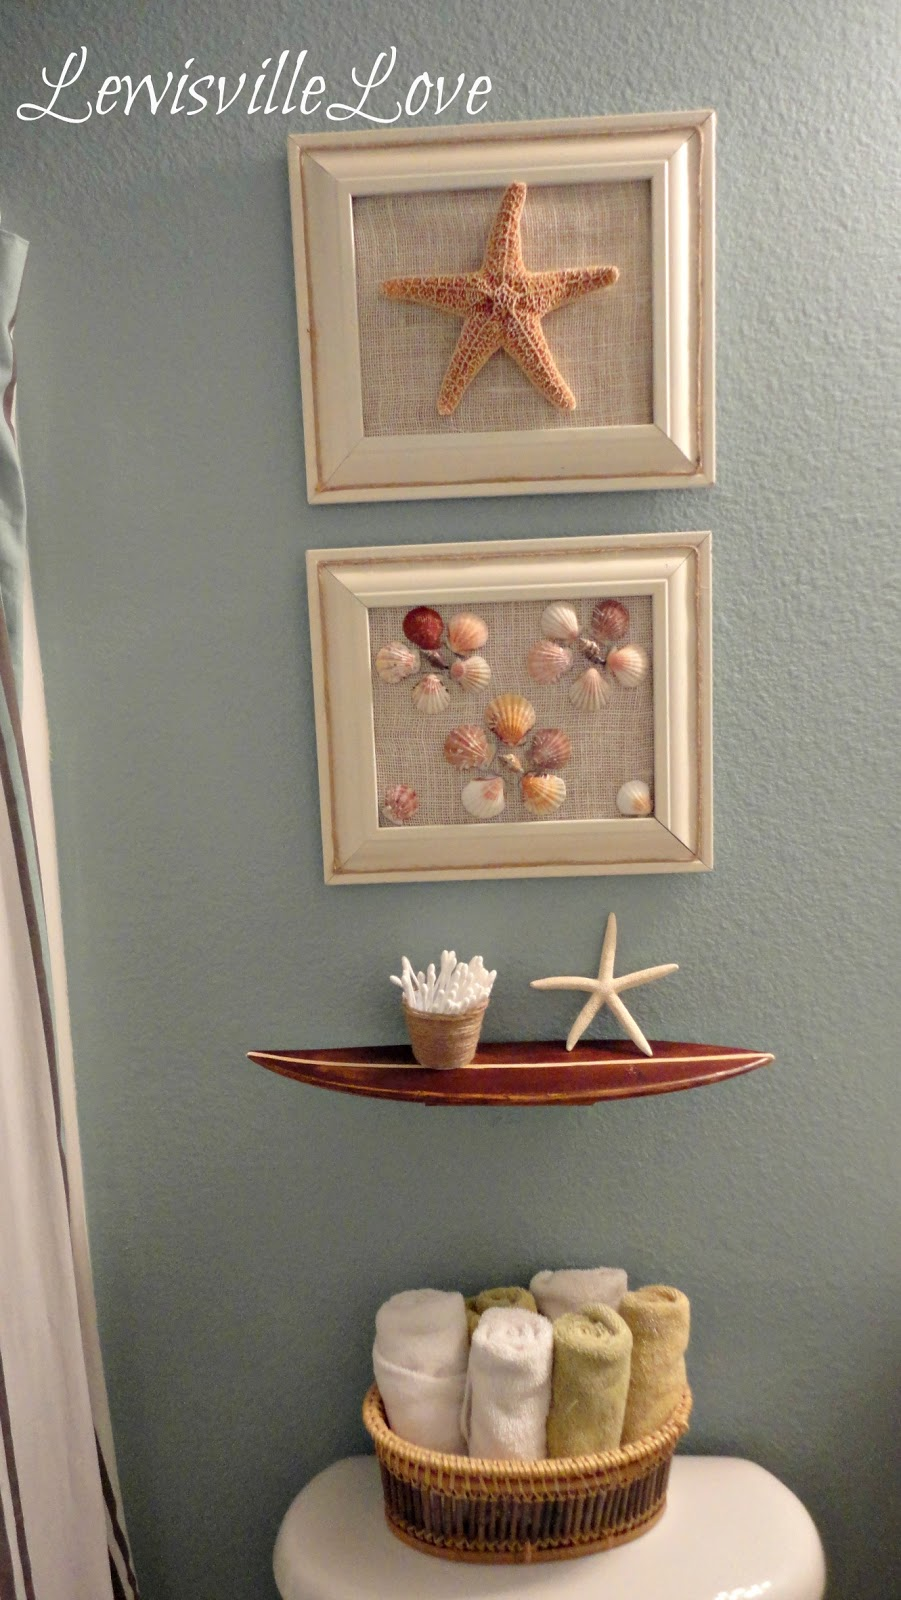 and there you have it a very simple beach bathroom makeover